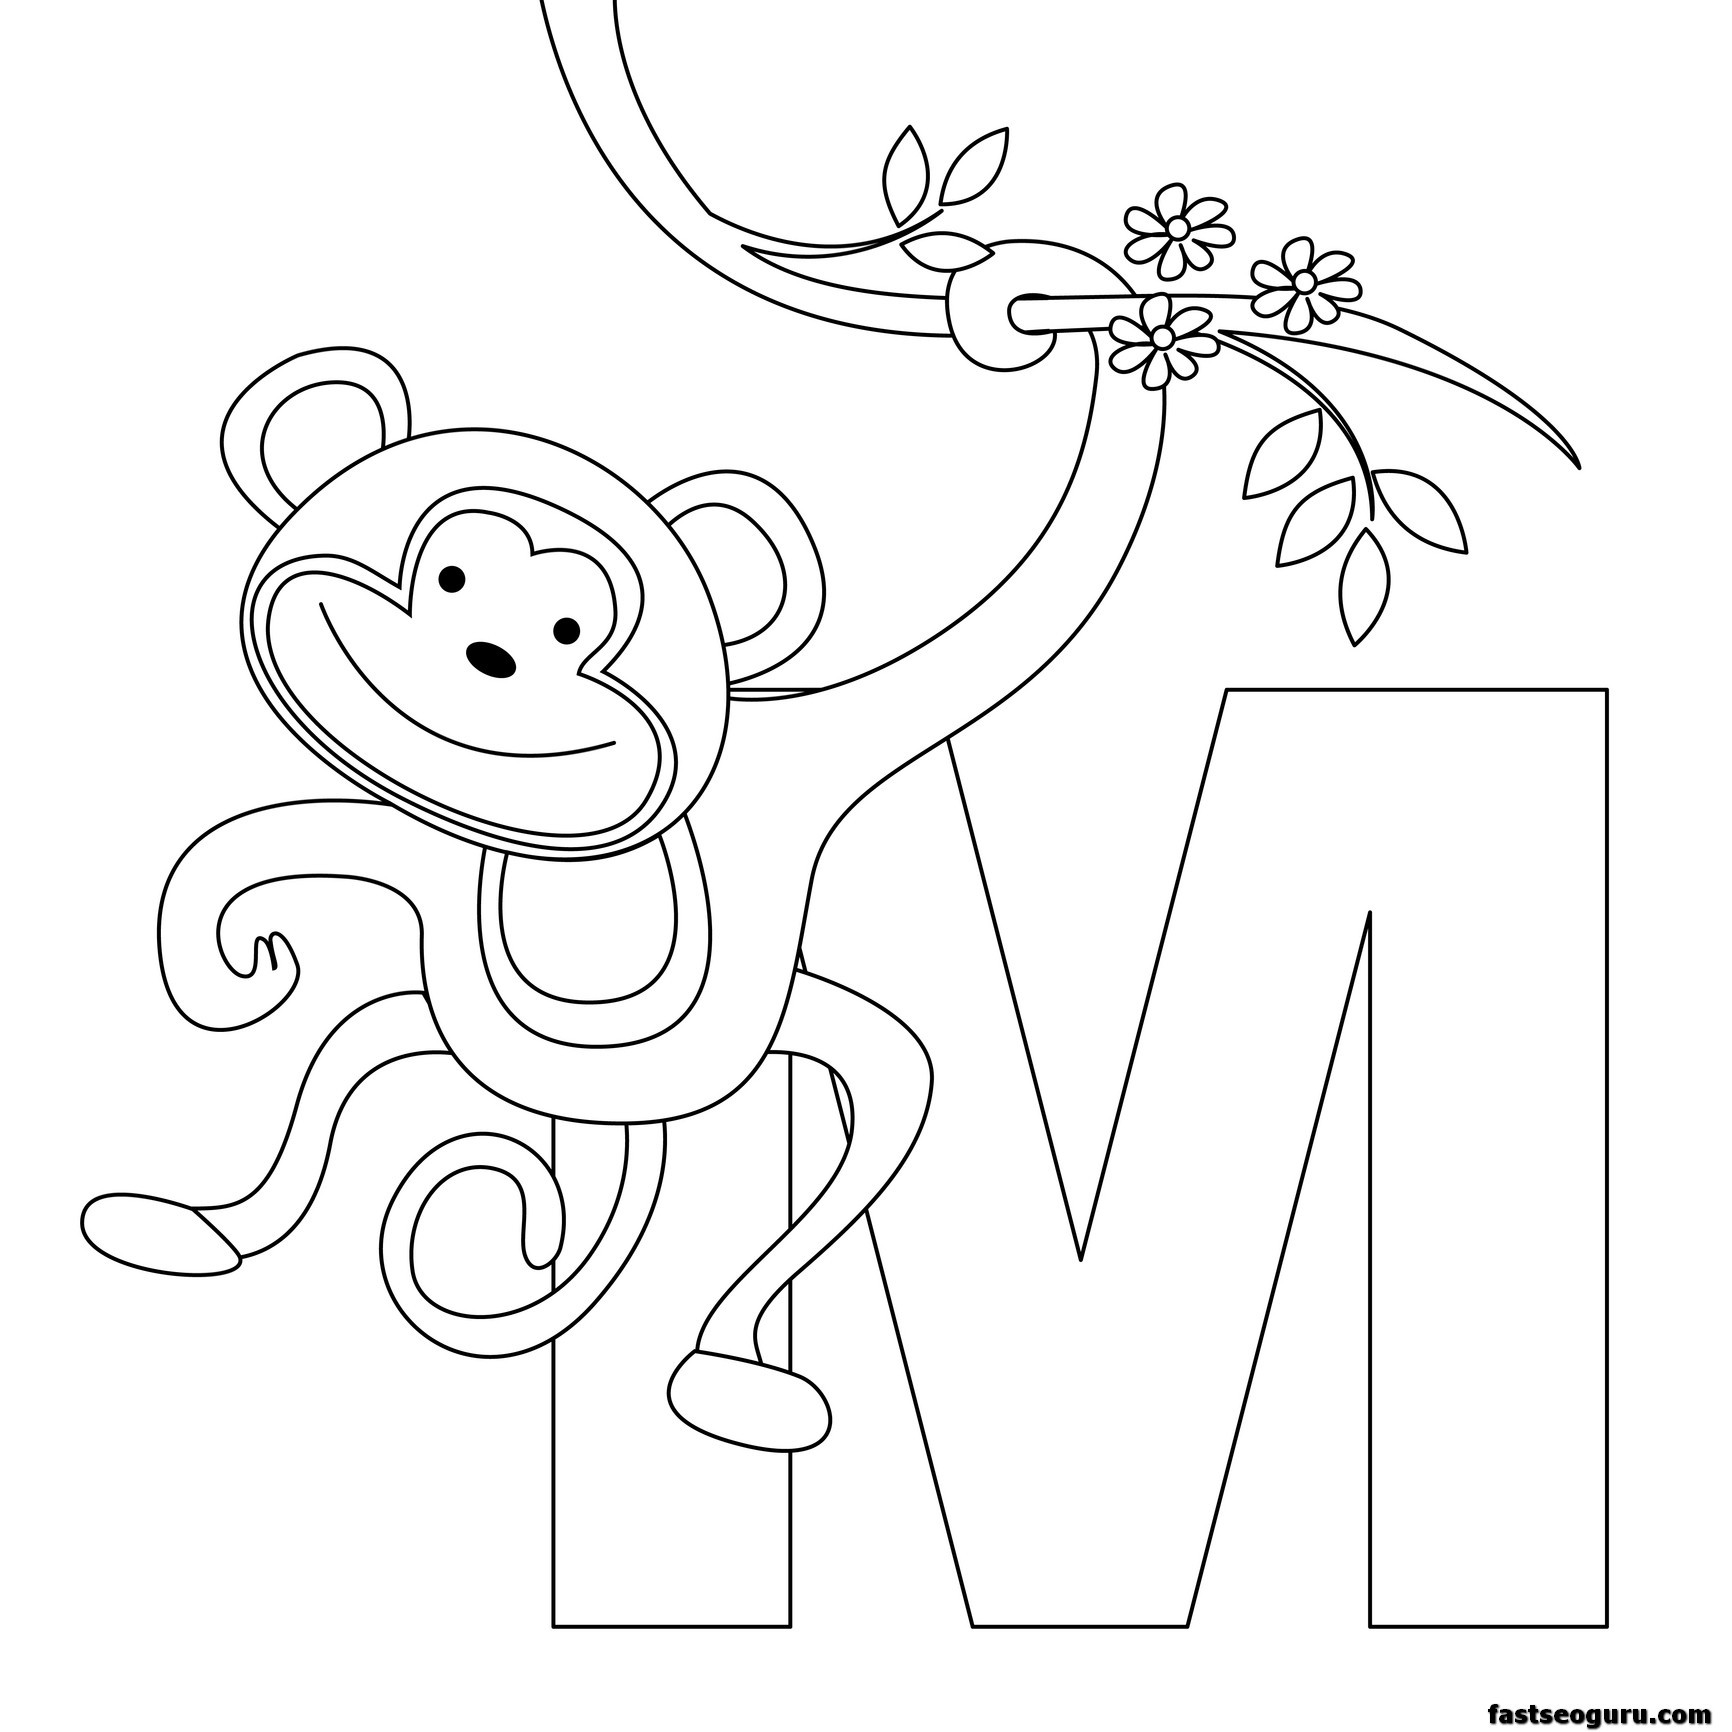 Printable Animal Alphabet Worksheets Letter M For Monkey